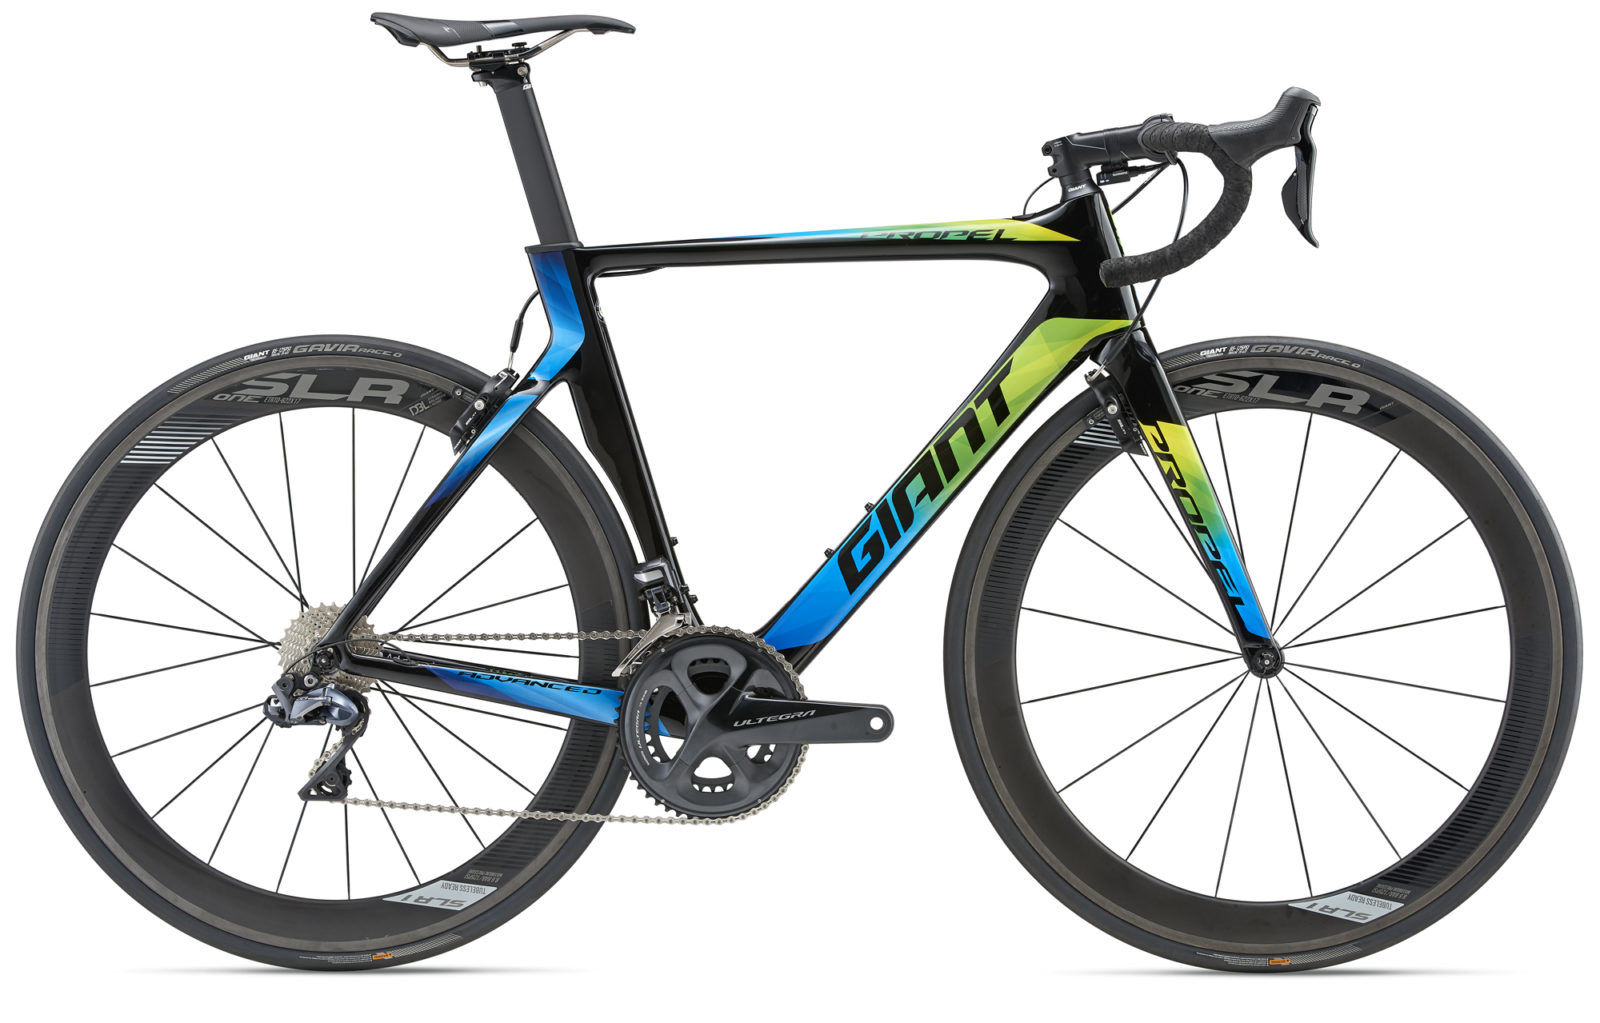 Giant Rennrad Propel Advanced Pro 0 2018